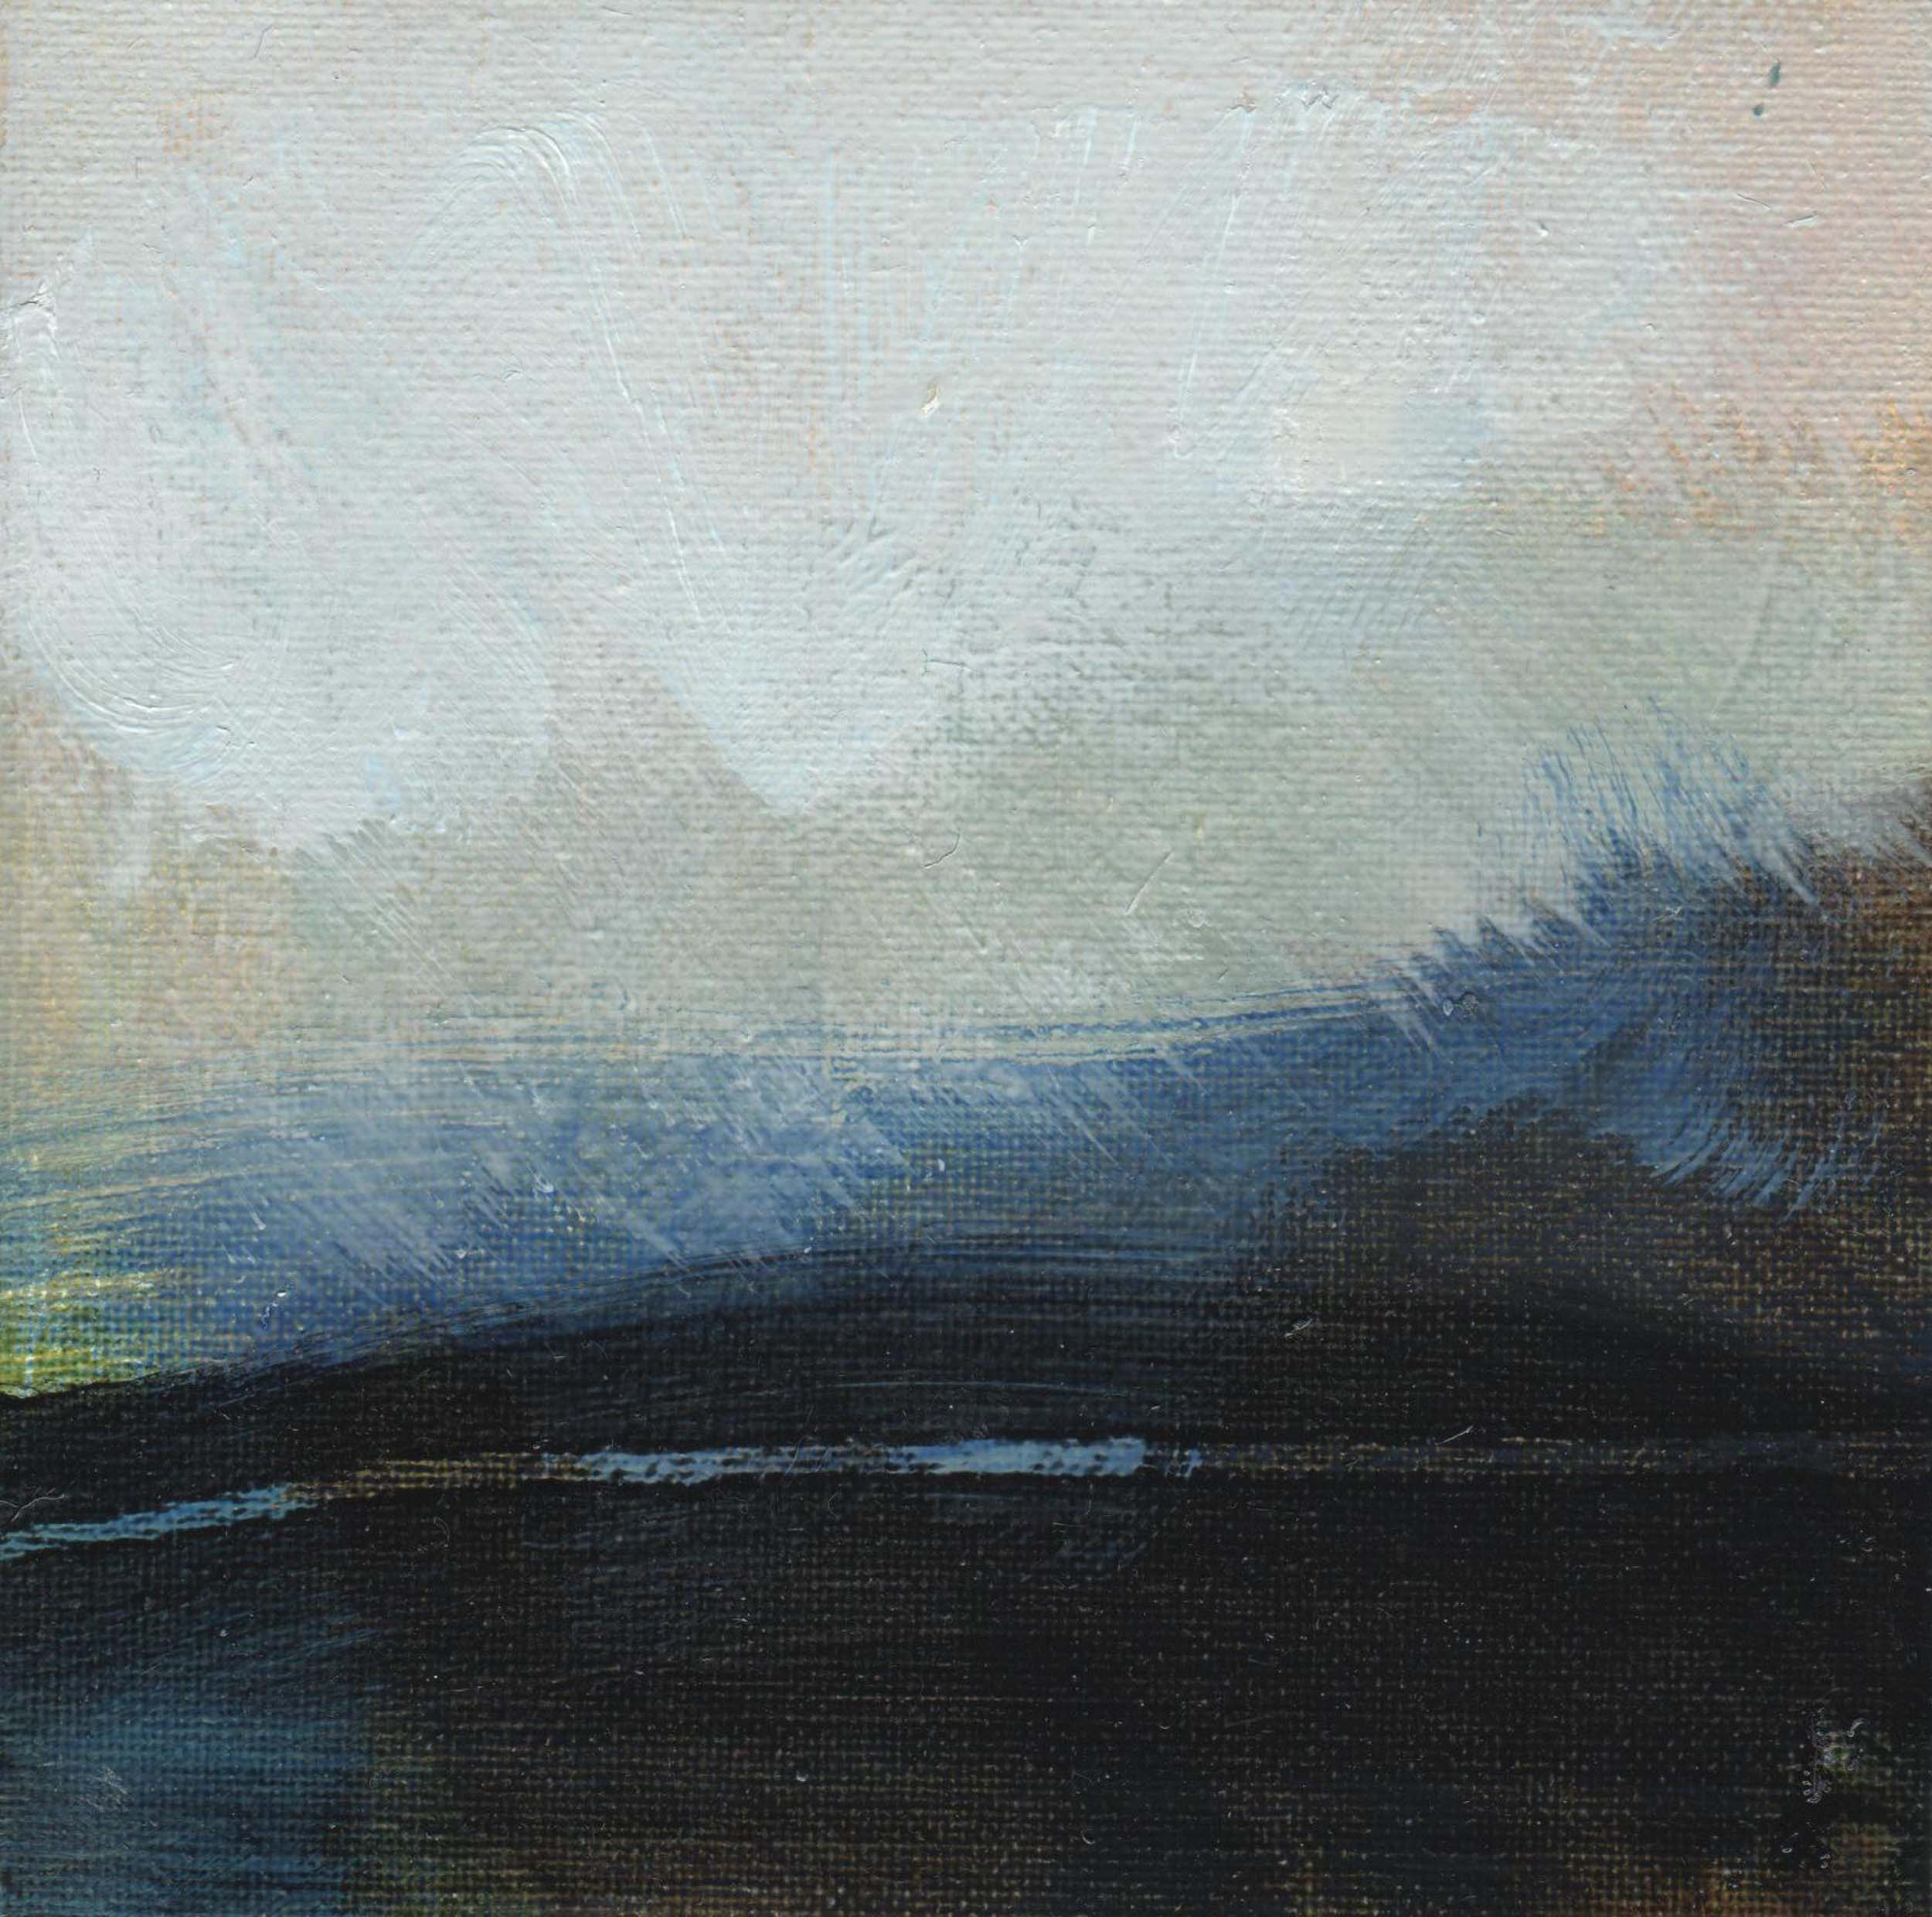 Leah Beggs 2008-Thunderstorm near Mannin Strand -Oil on Unstretched Canvas-15 x 15 cm_sml.jpg